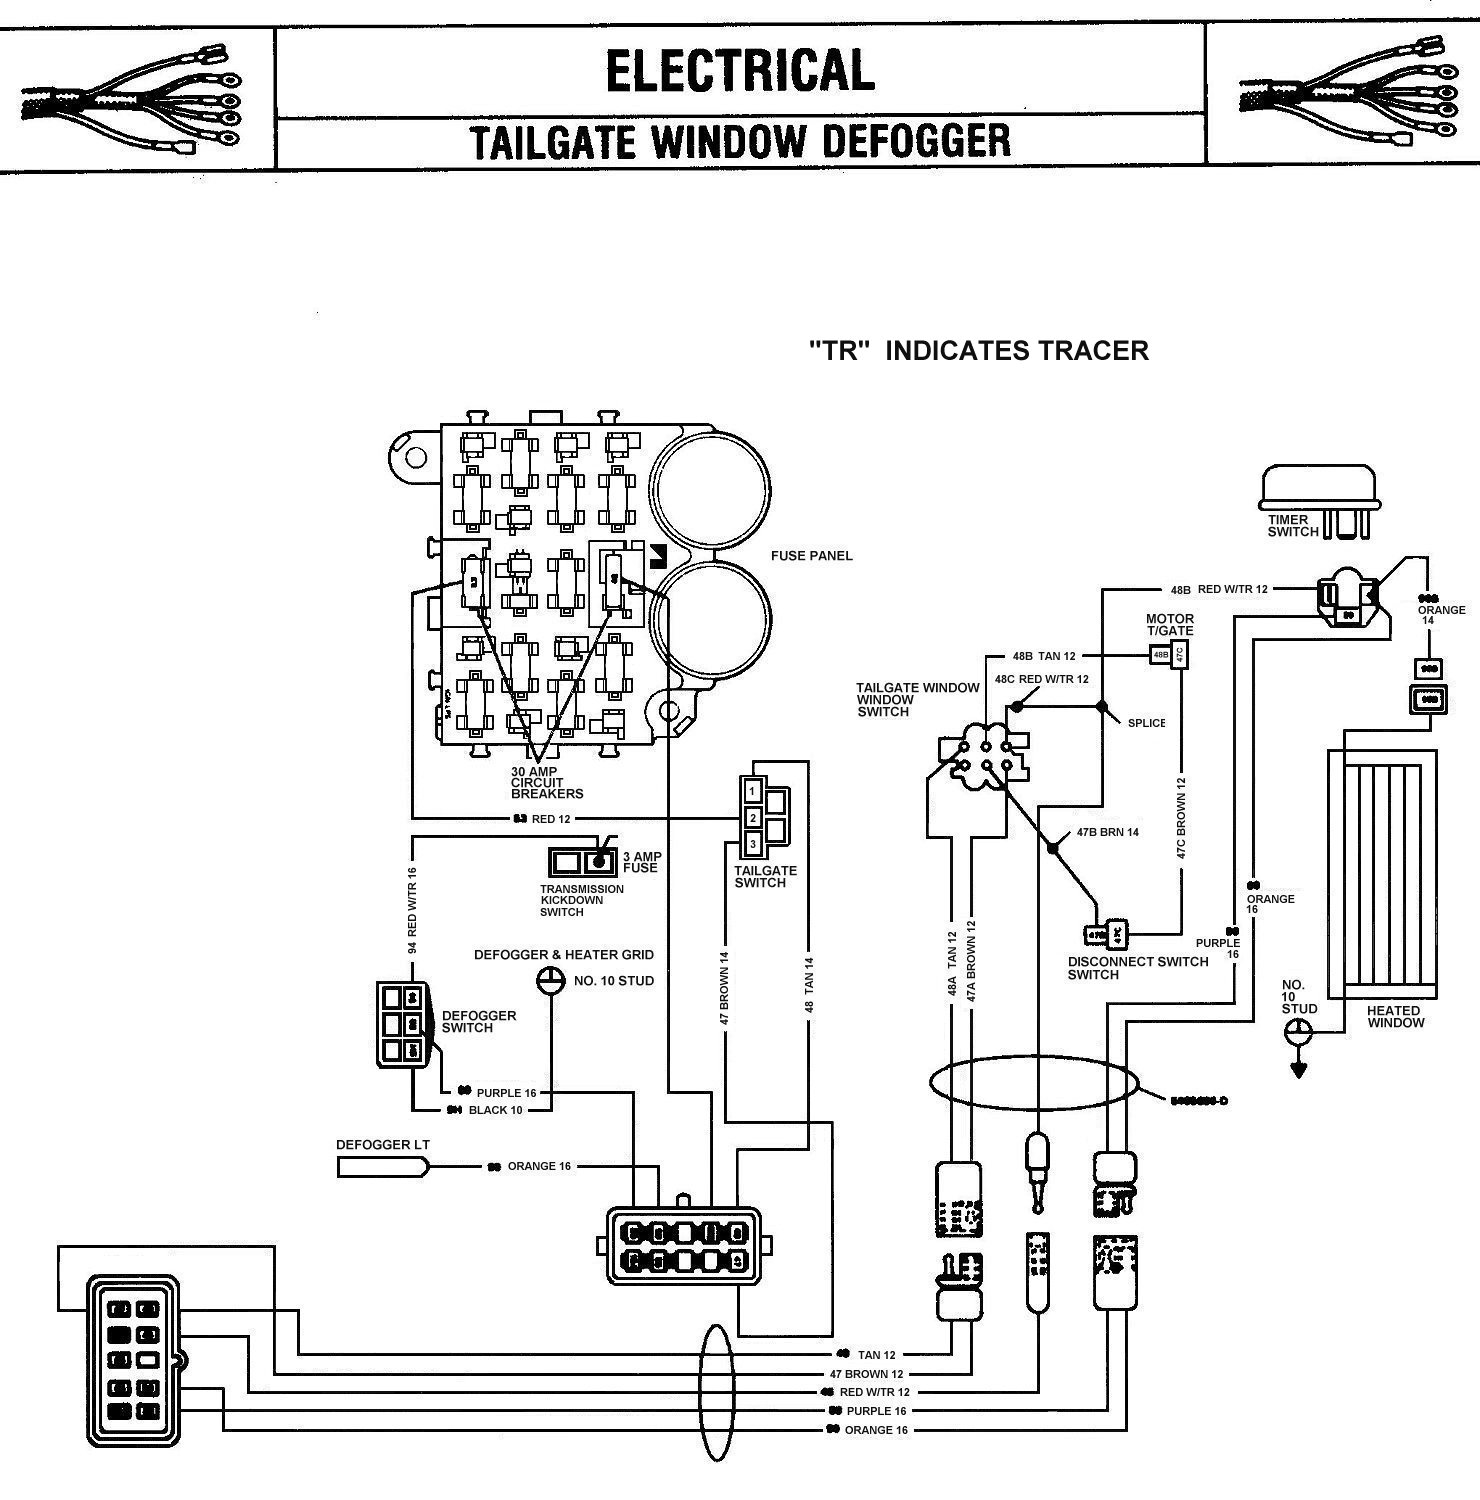 hight resolution of 1980 truck dodge 360 ignition wiring